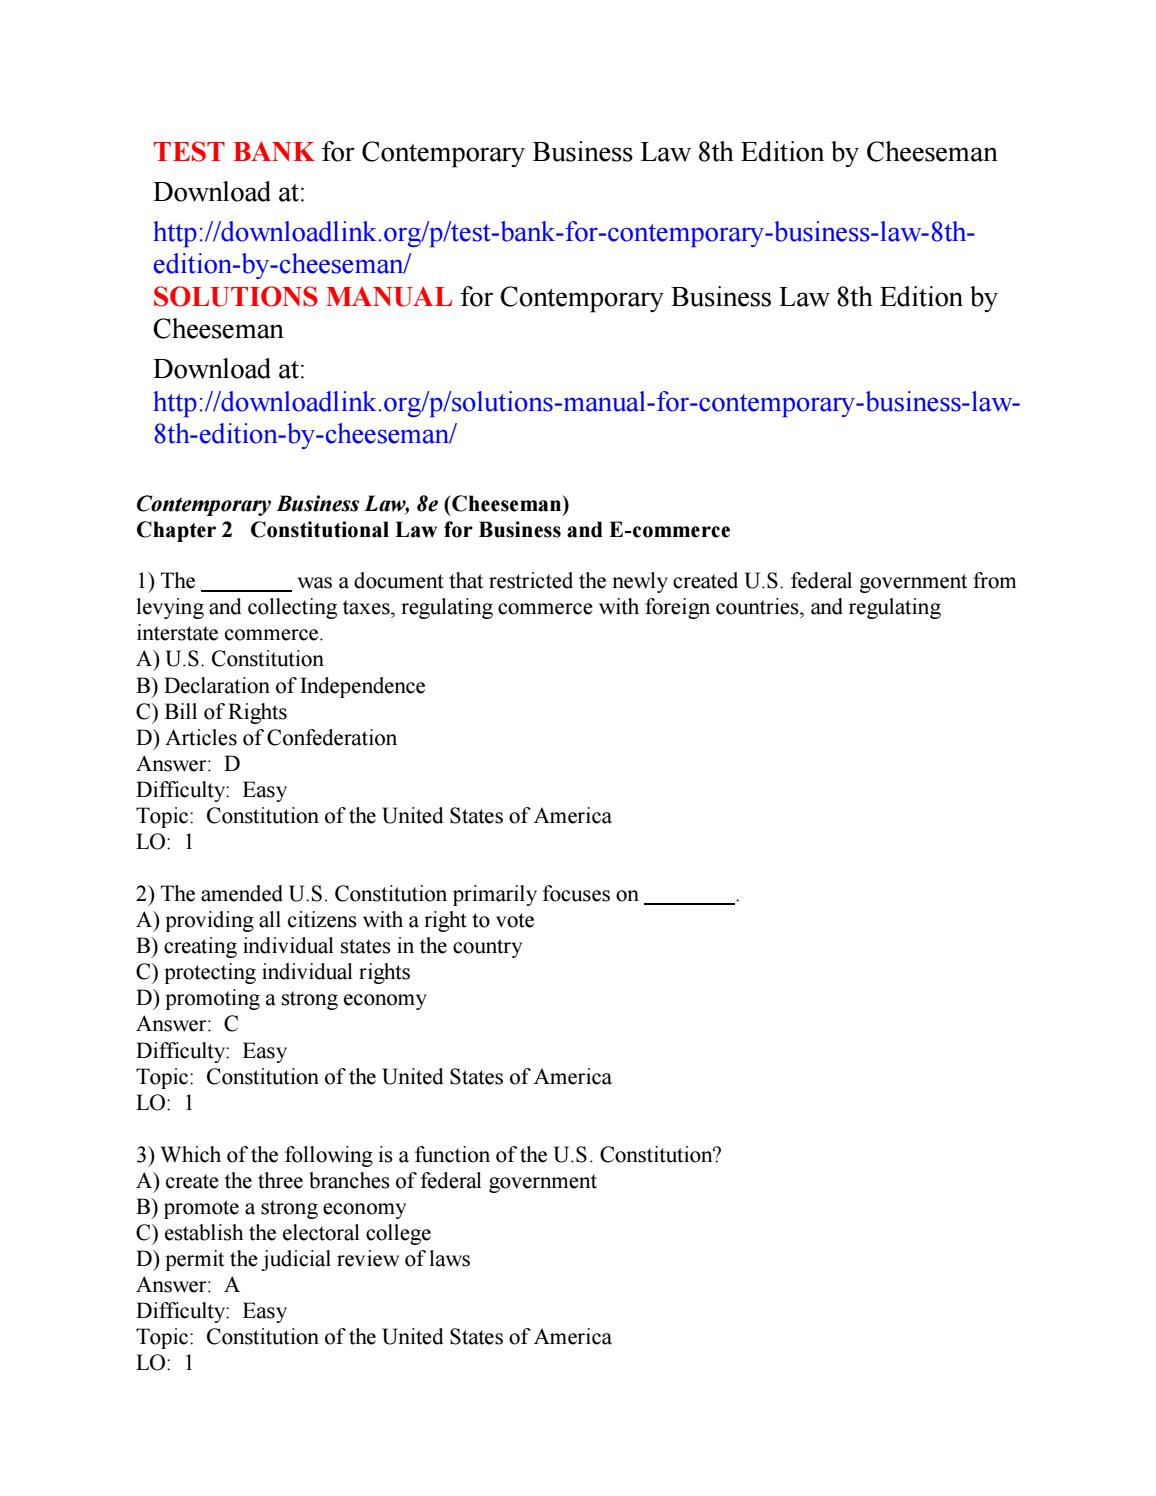 Test bank for contemporary business law 8th edition by cheeseman by  SolomonChee - issuu